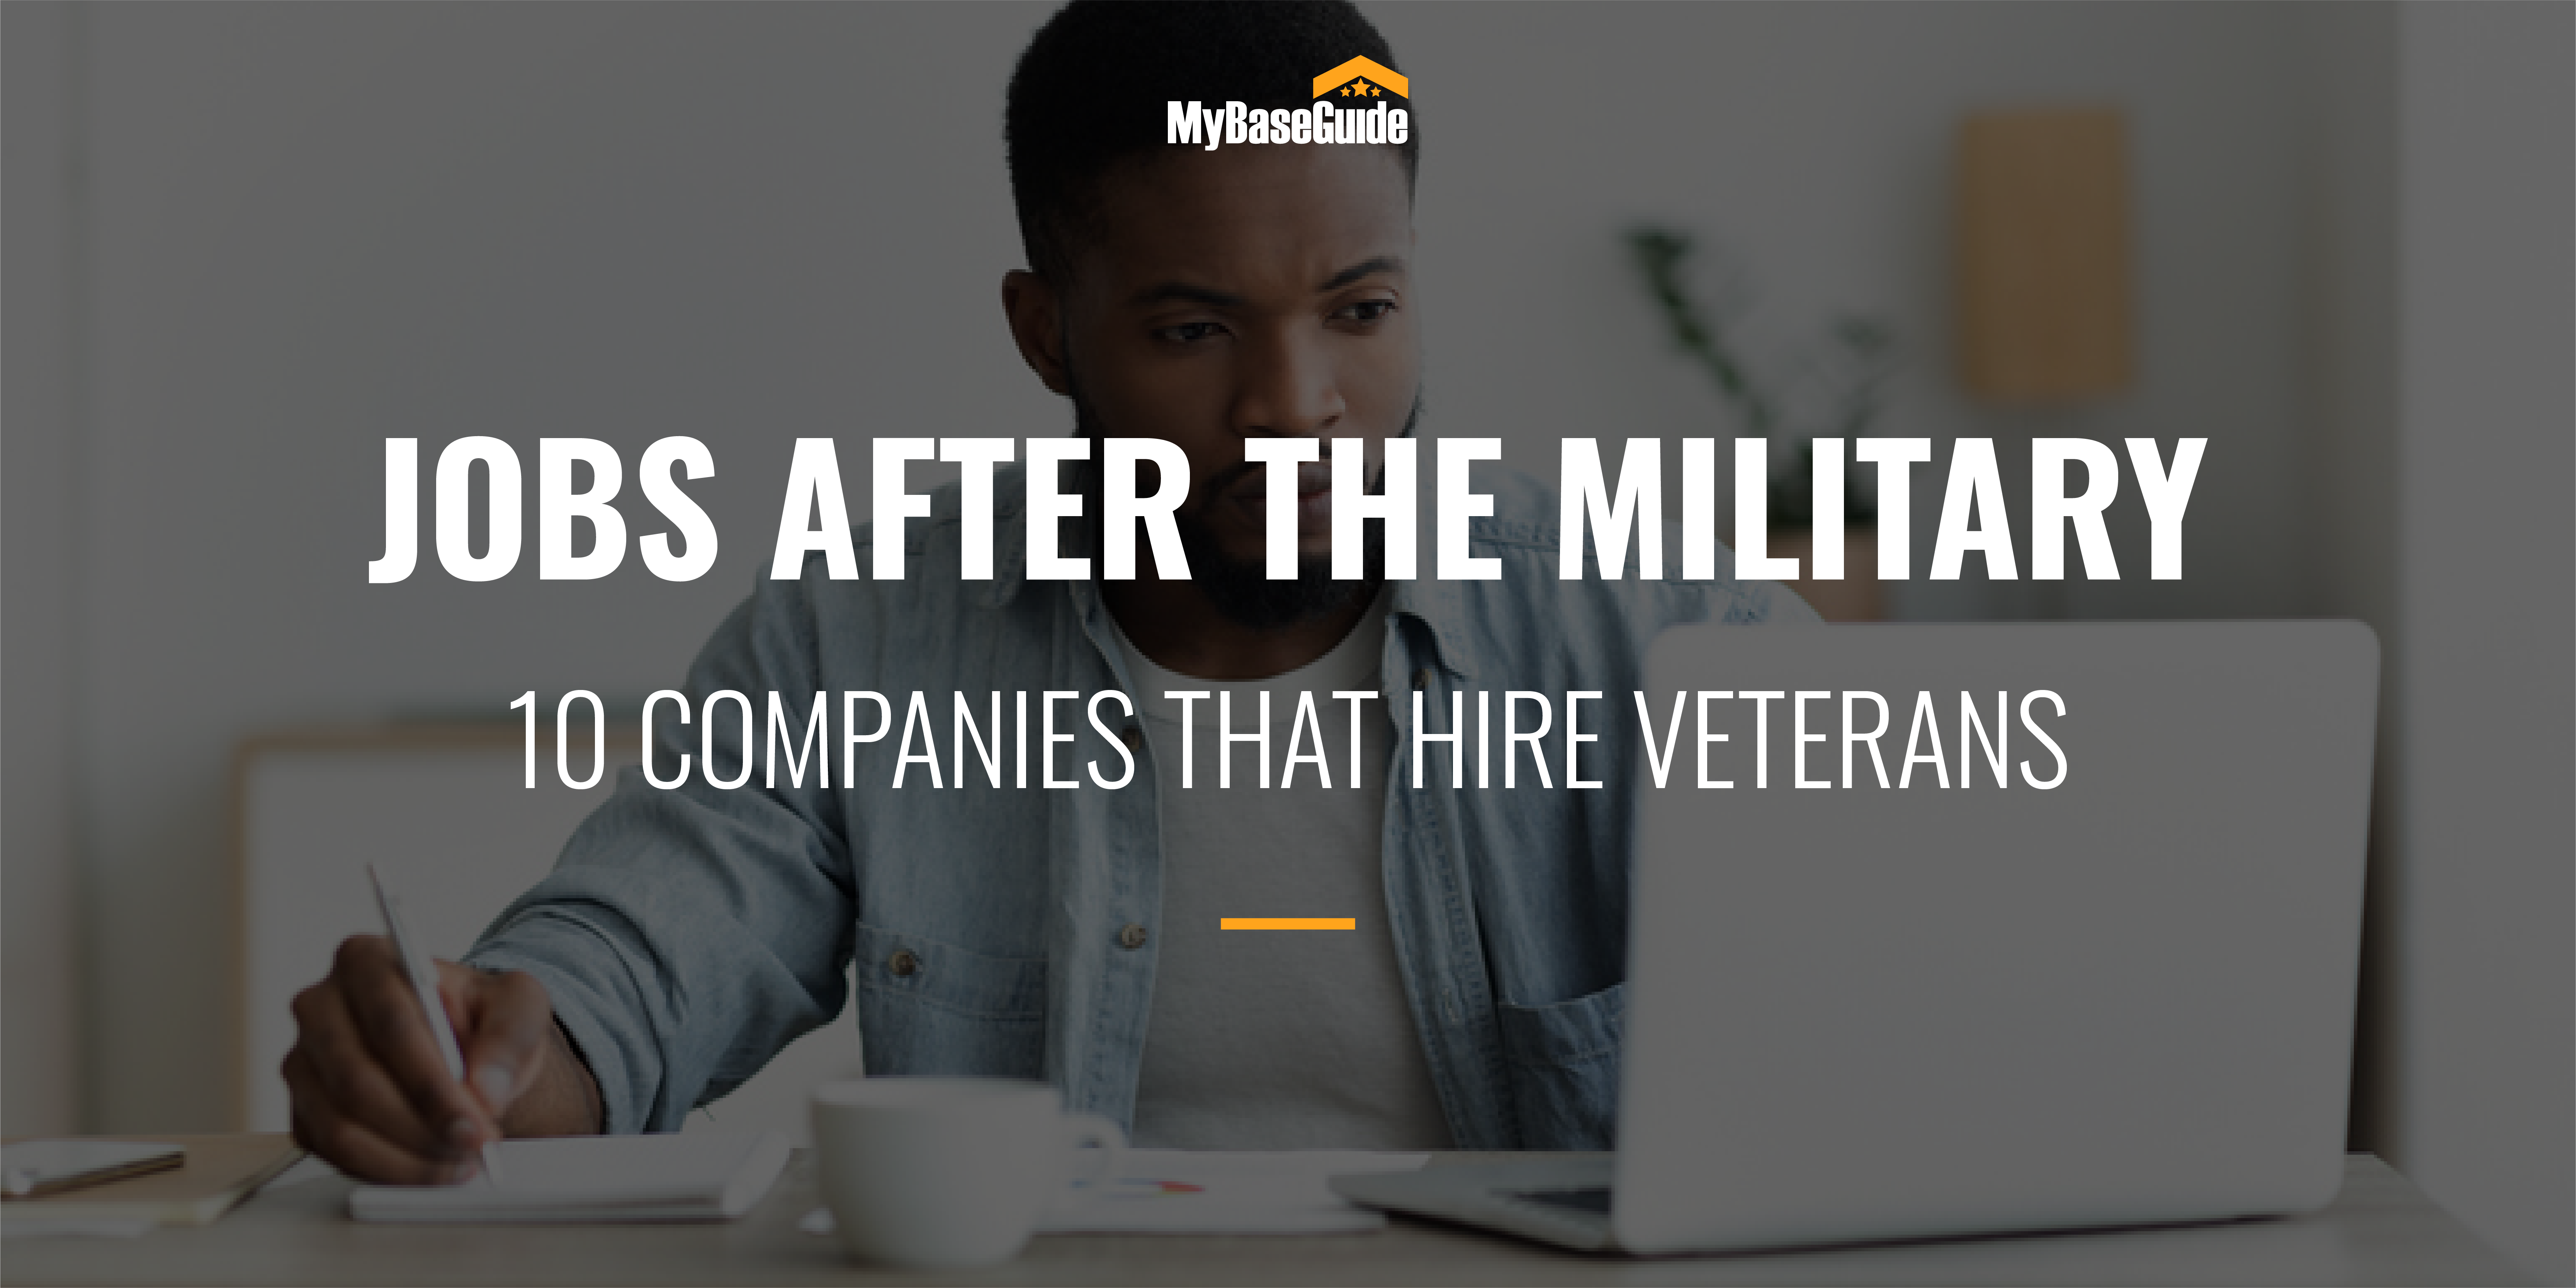 Jobs After the Military: 10 Companies That Hire Veterans